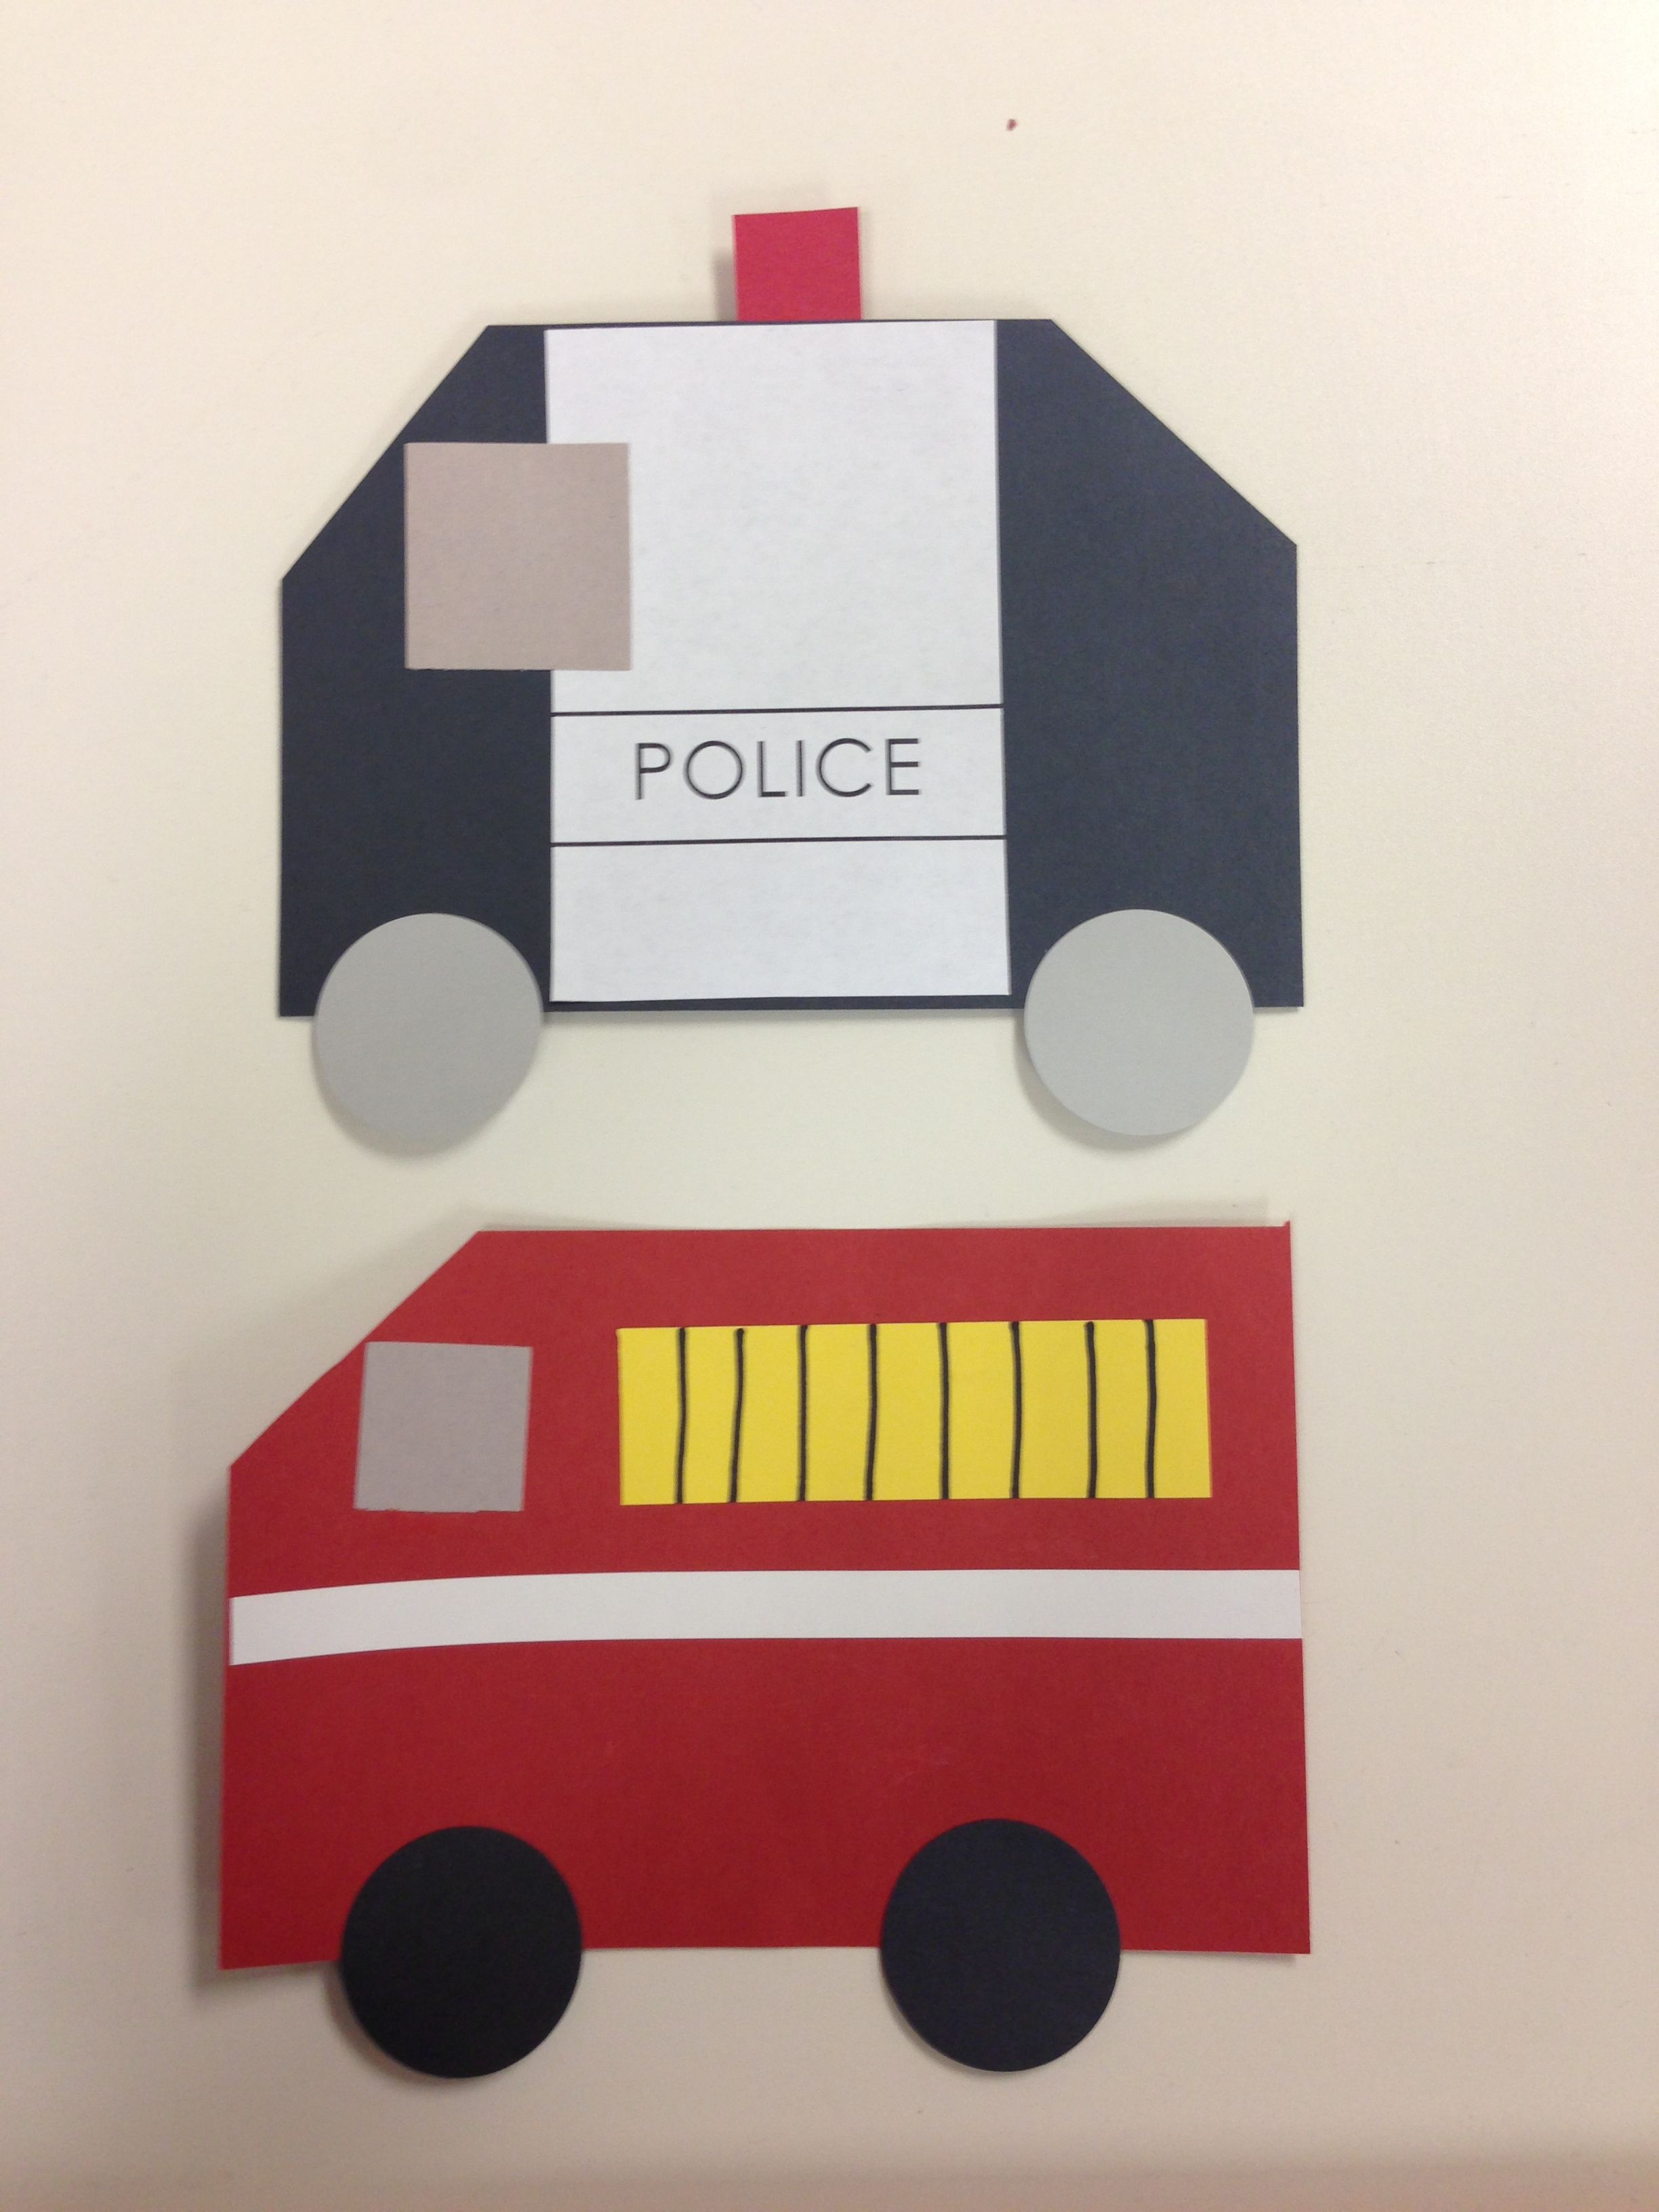 20 Police Car Template For Preschool Pictures And Ideas On Meta